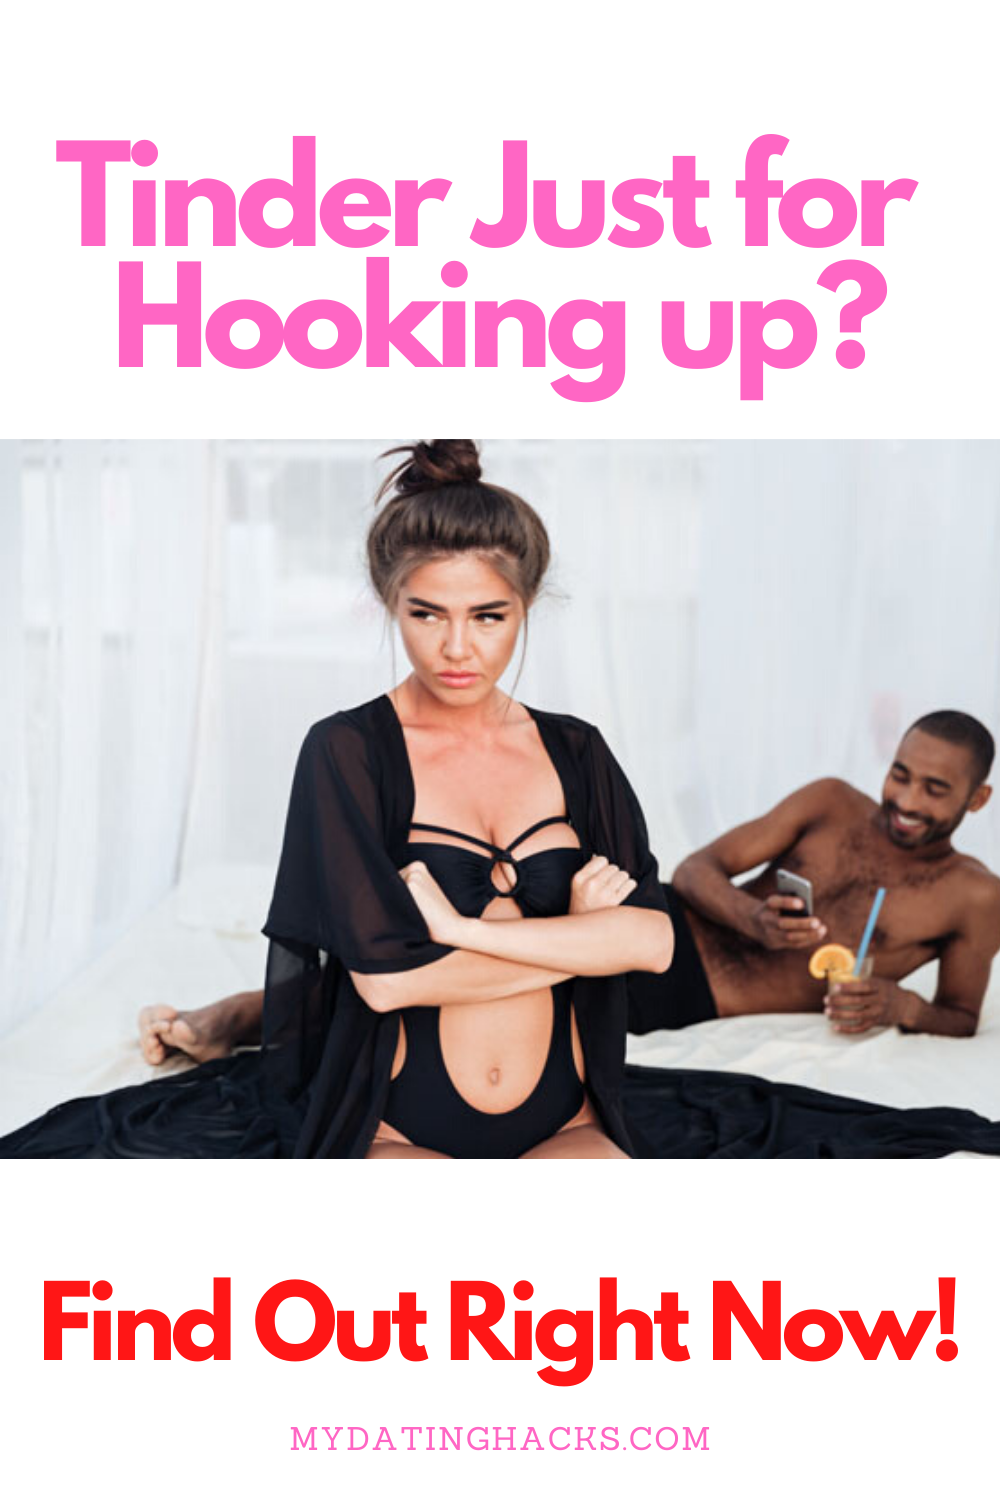 Dating site just for hooking up